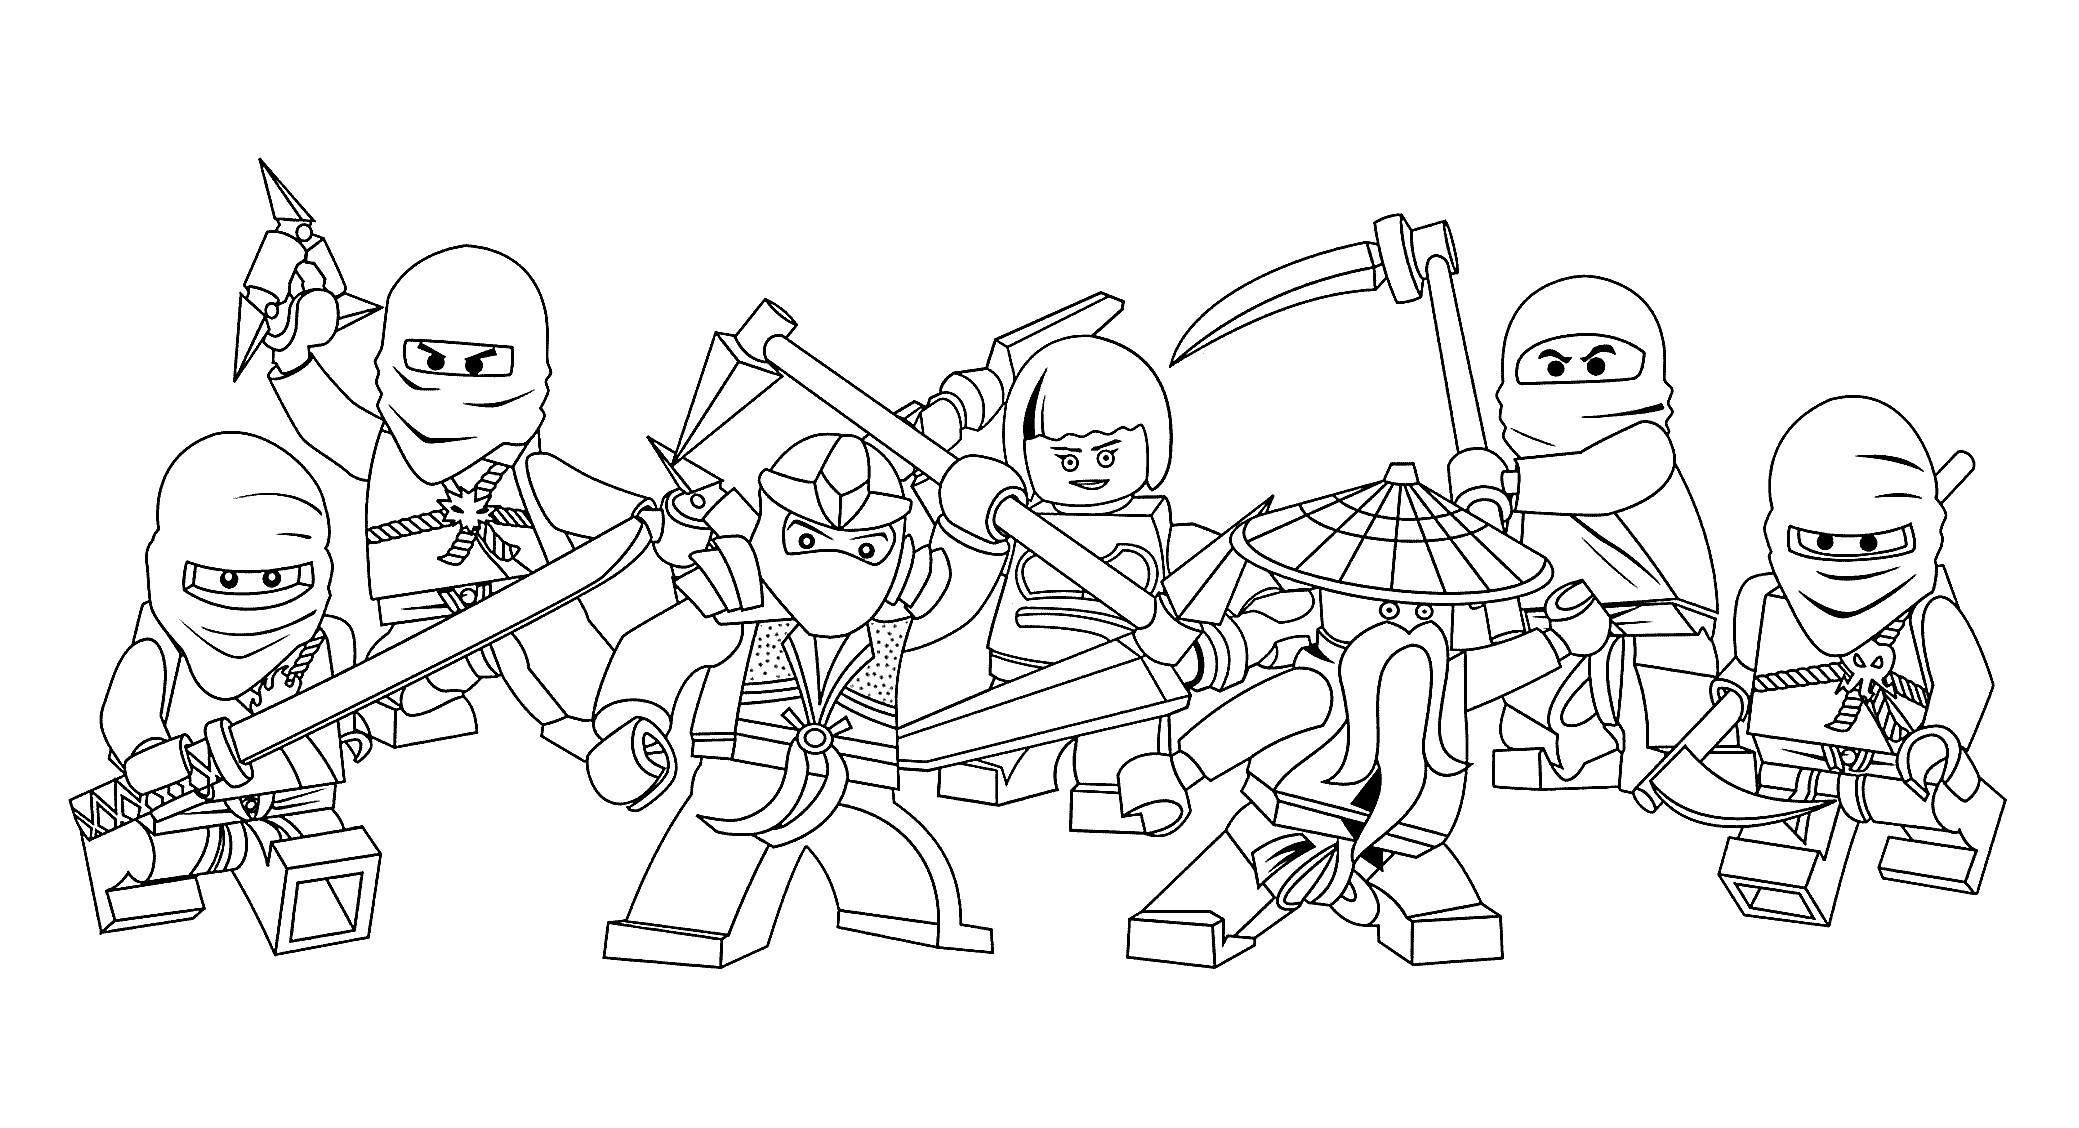 Free Ninja Coloring Pages  to Print 13p - To print for your project